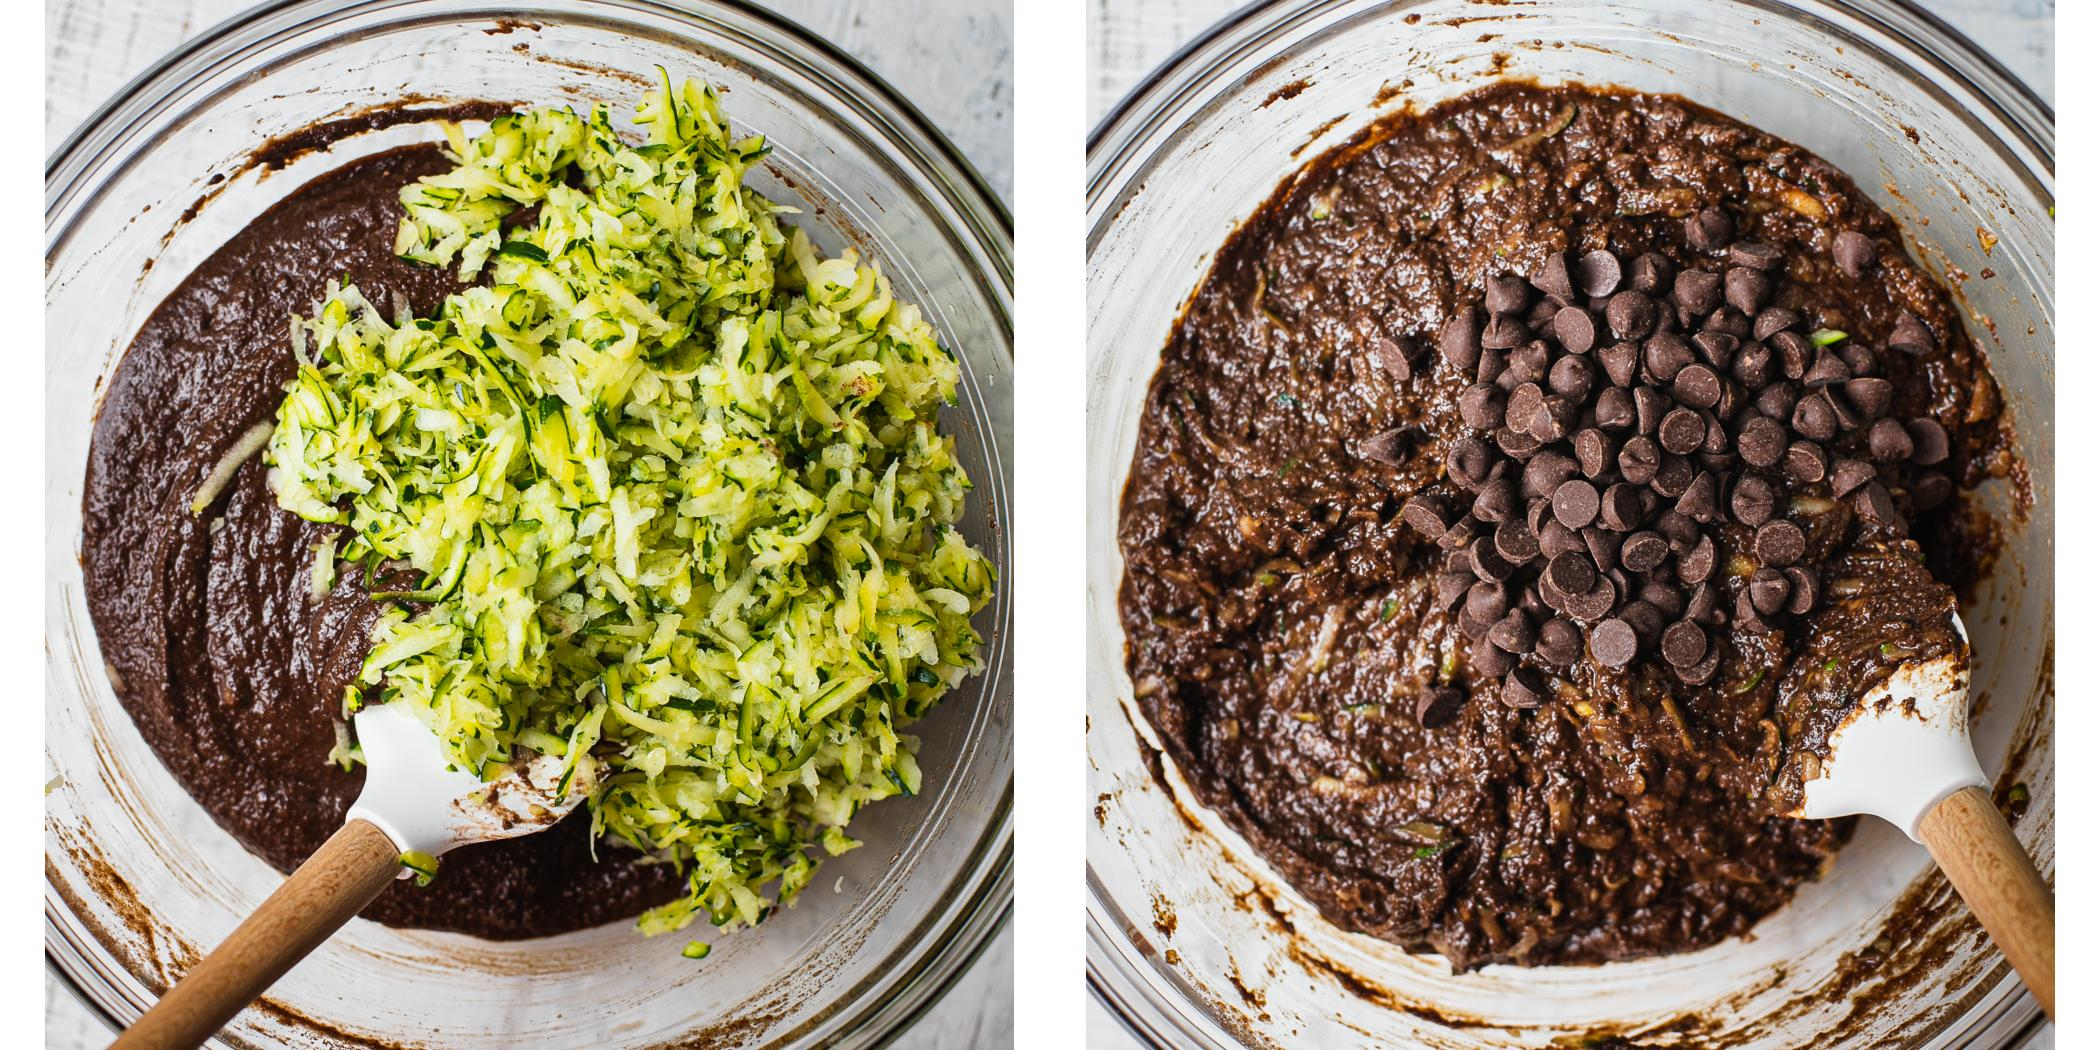 Two bowls with dairy free chocolate batter in it. In one bowl shredded zucchini is being added and in the second bols paleo chcolate chips are being folded in to the rich cake batter